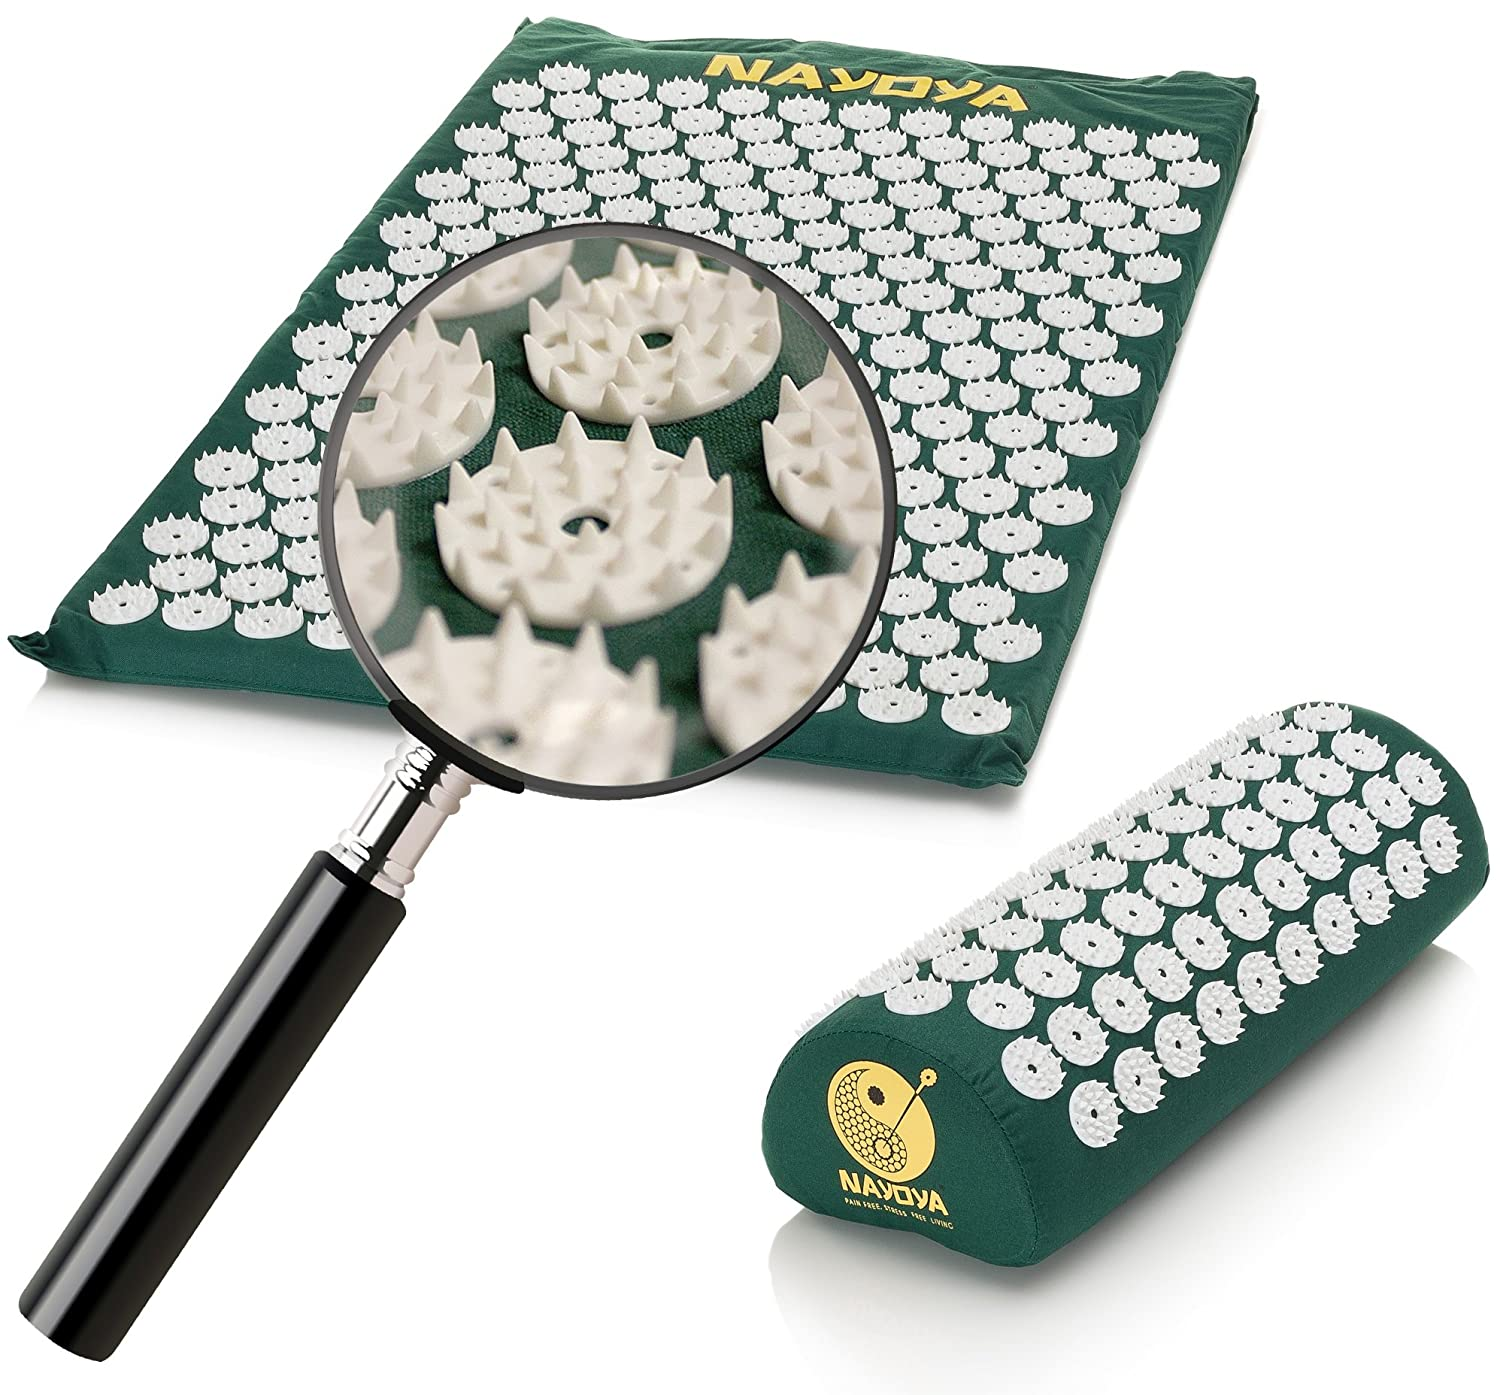 Colour therapy for sciatica - Buy Nayoya Wellness Best Back Pain Relief Acupressure Mat Pillow Set Online At Low Prices In India Amazon In